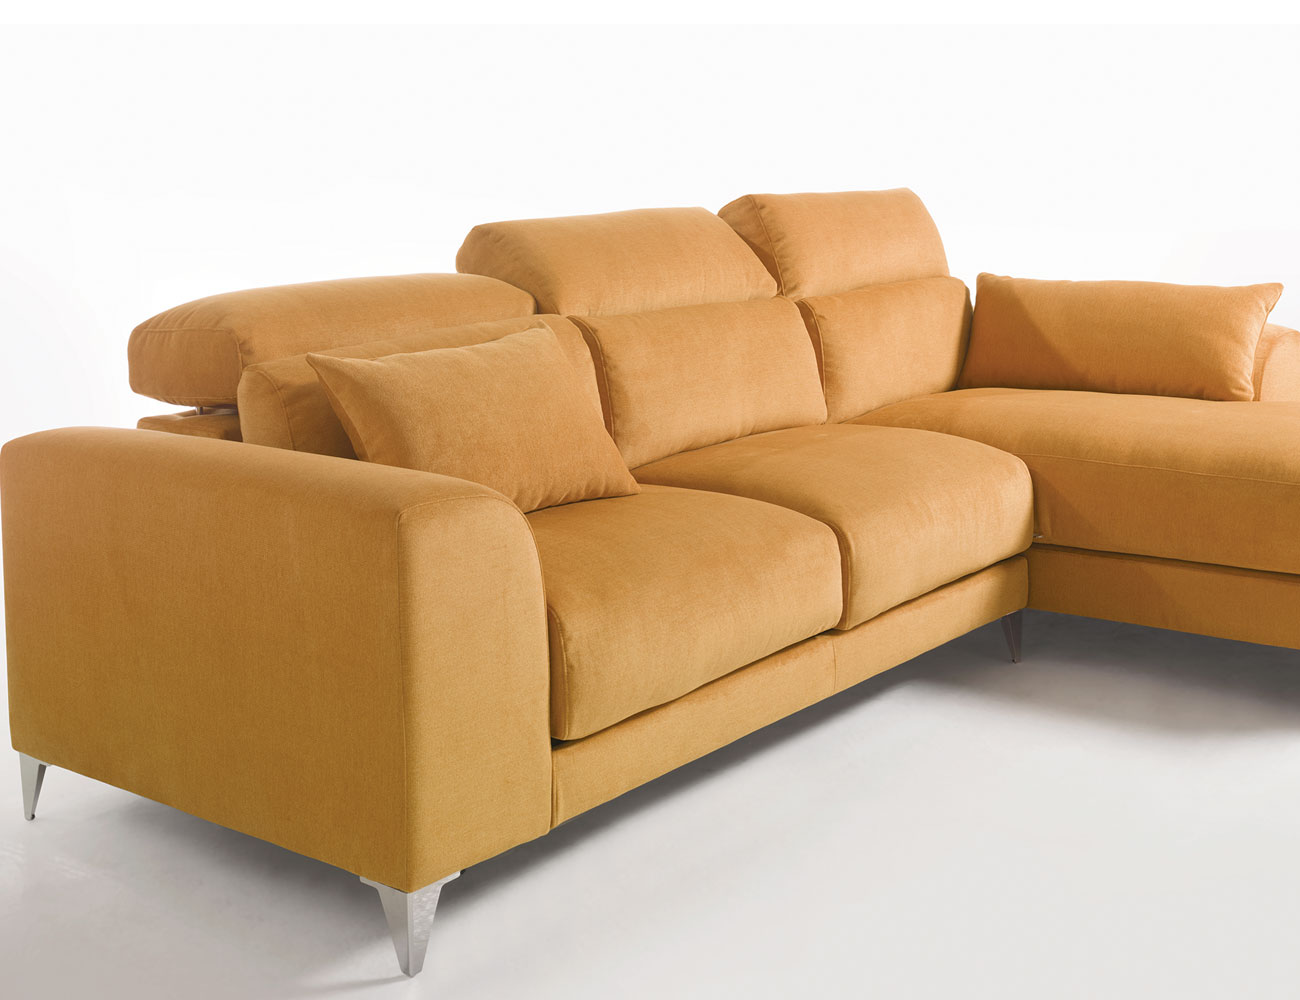 Sofa chaiselongue gran lujo decorativo patas altas amarillo 219